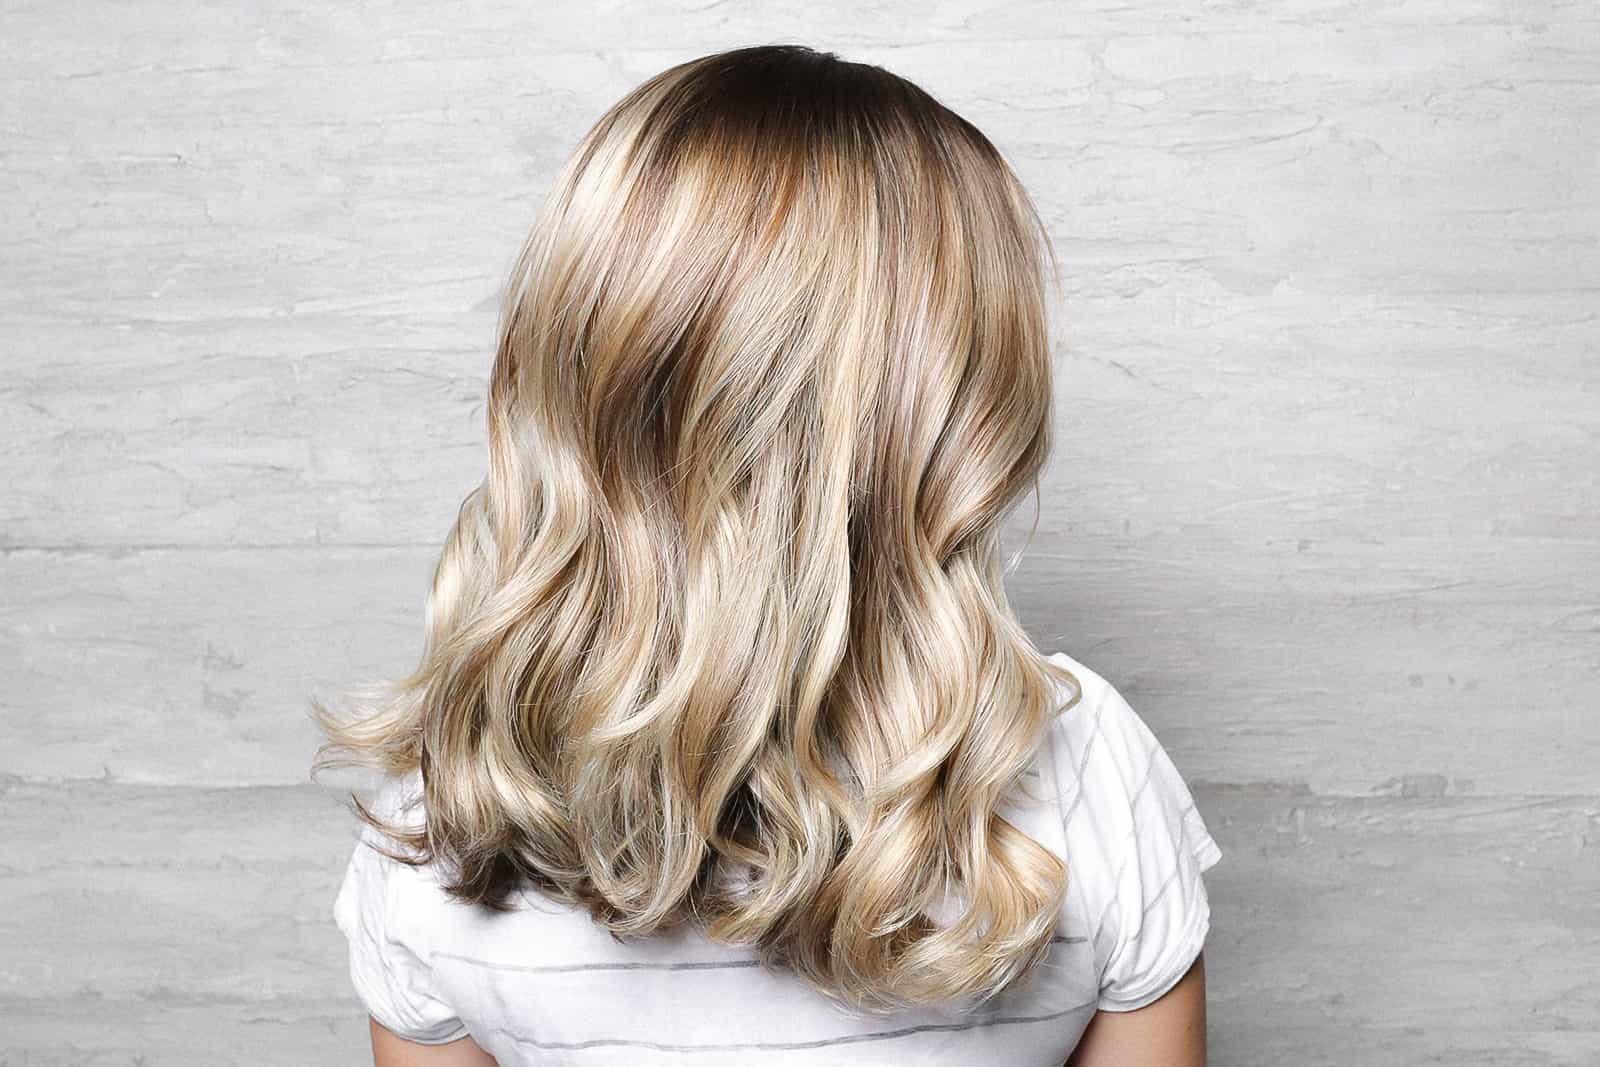 Blonde balayage with blow out curls